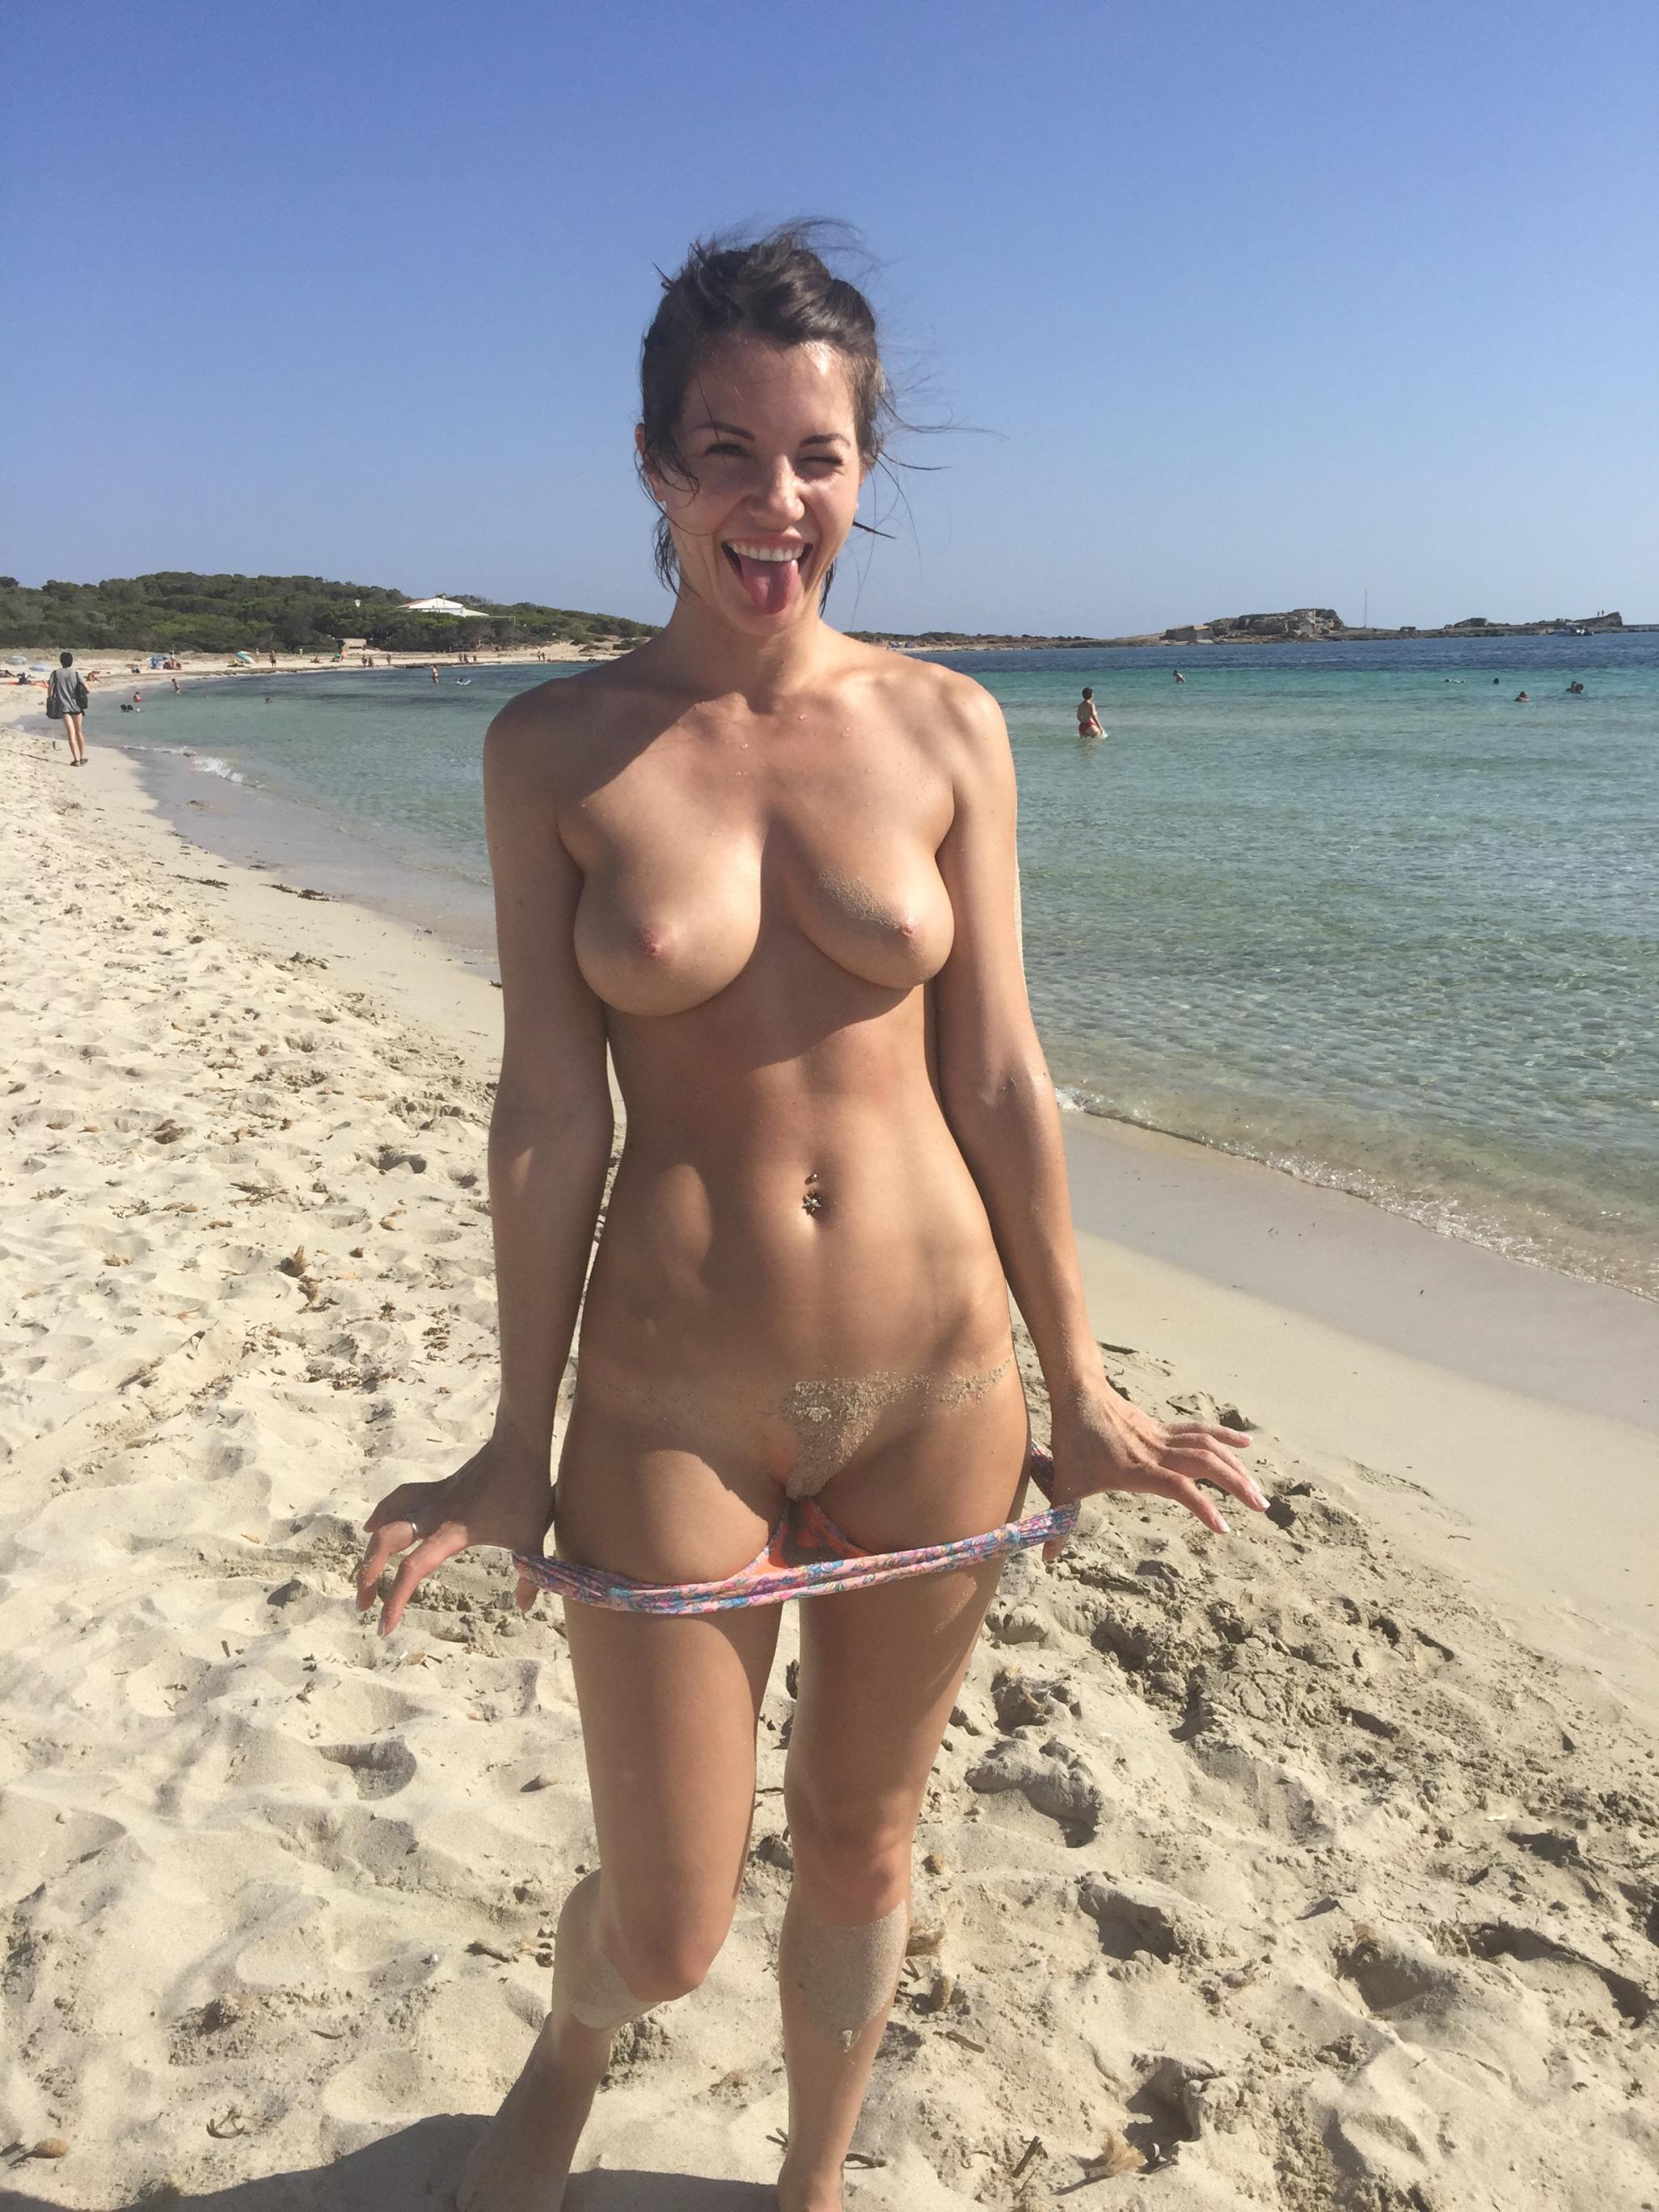 from Joaquin busty mom on nude beach